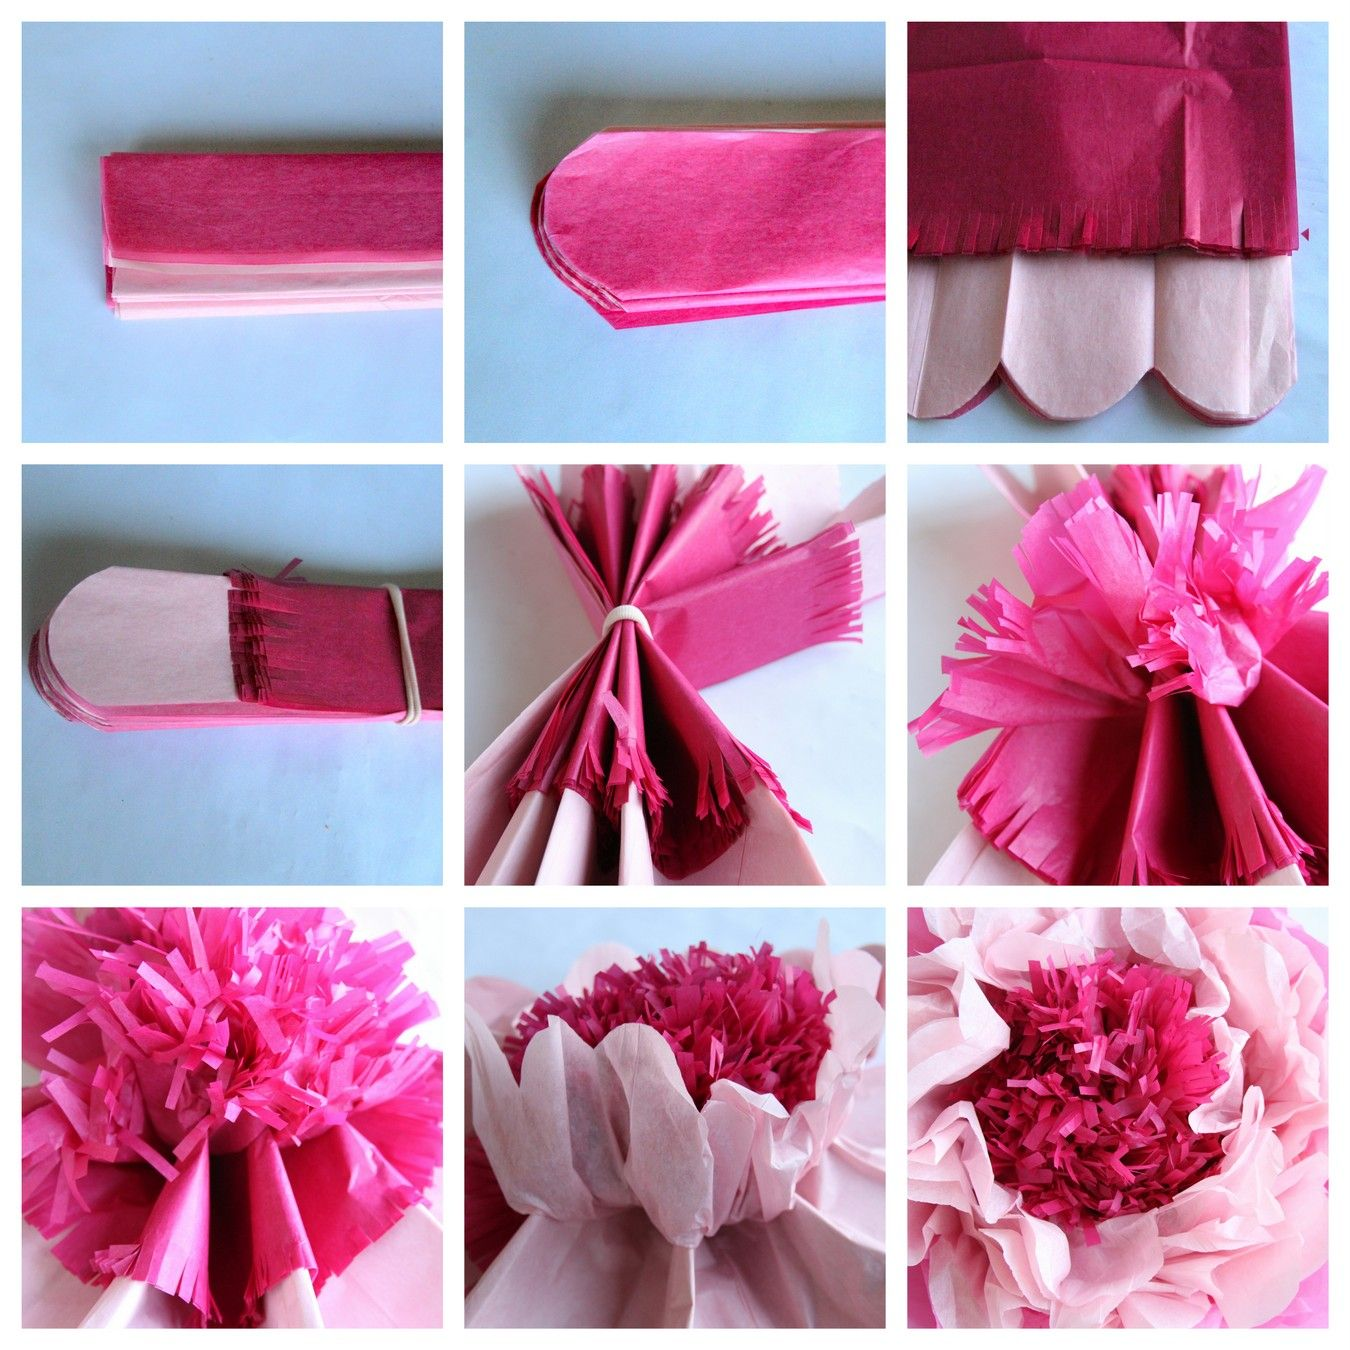 How To Make Giant Tissue Paper Flowers Jj Grad Pinterest Paper